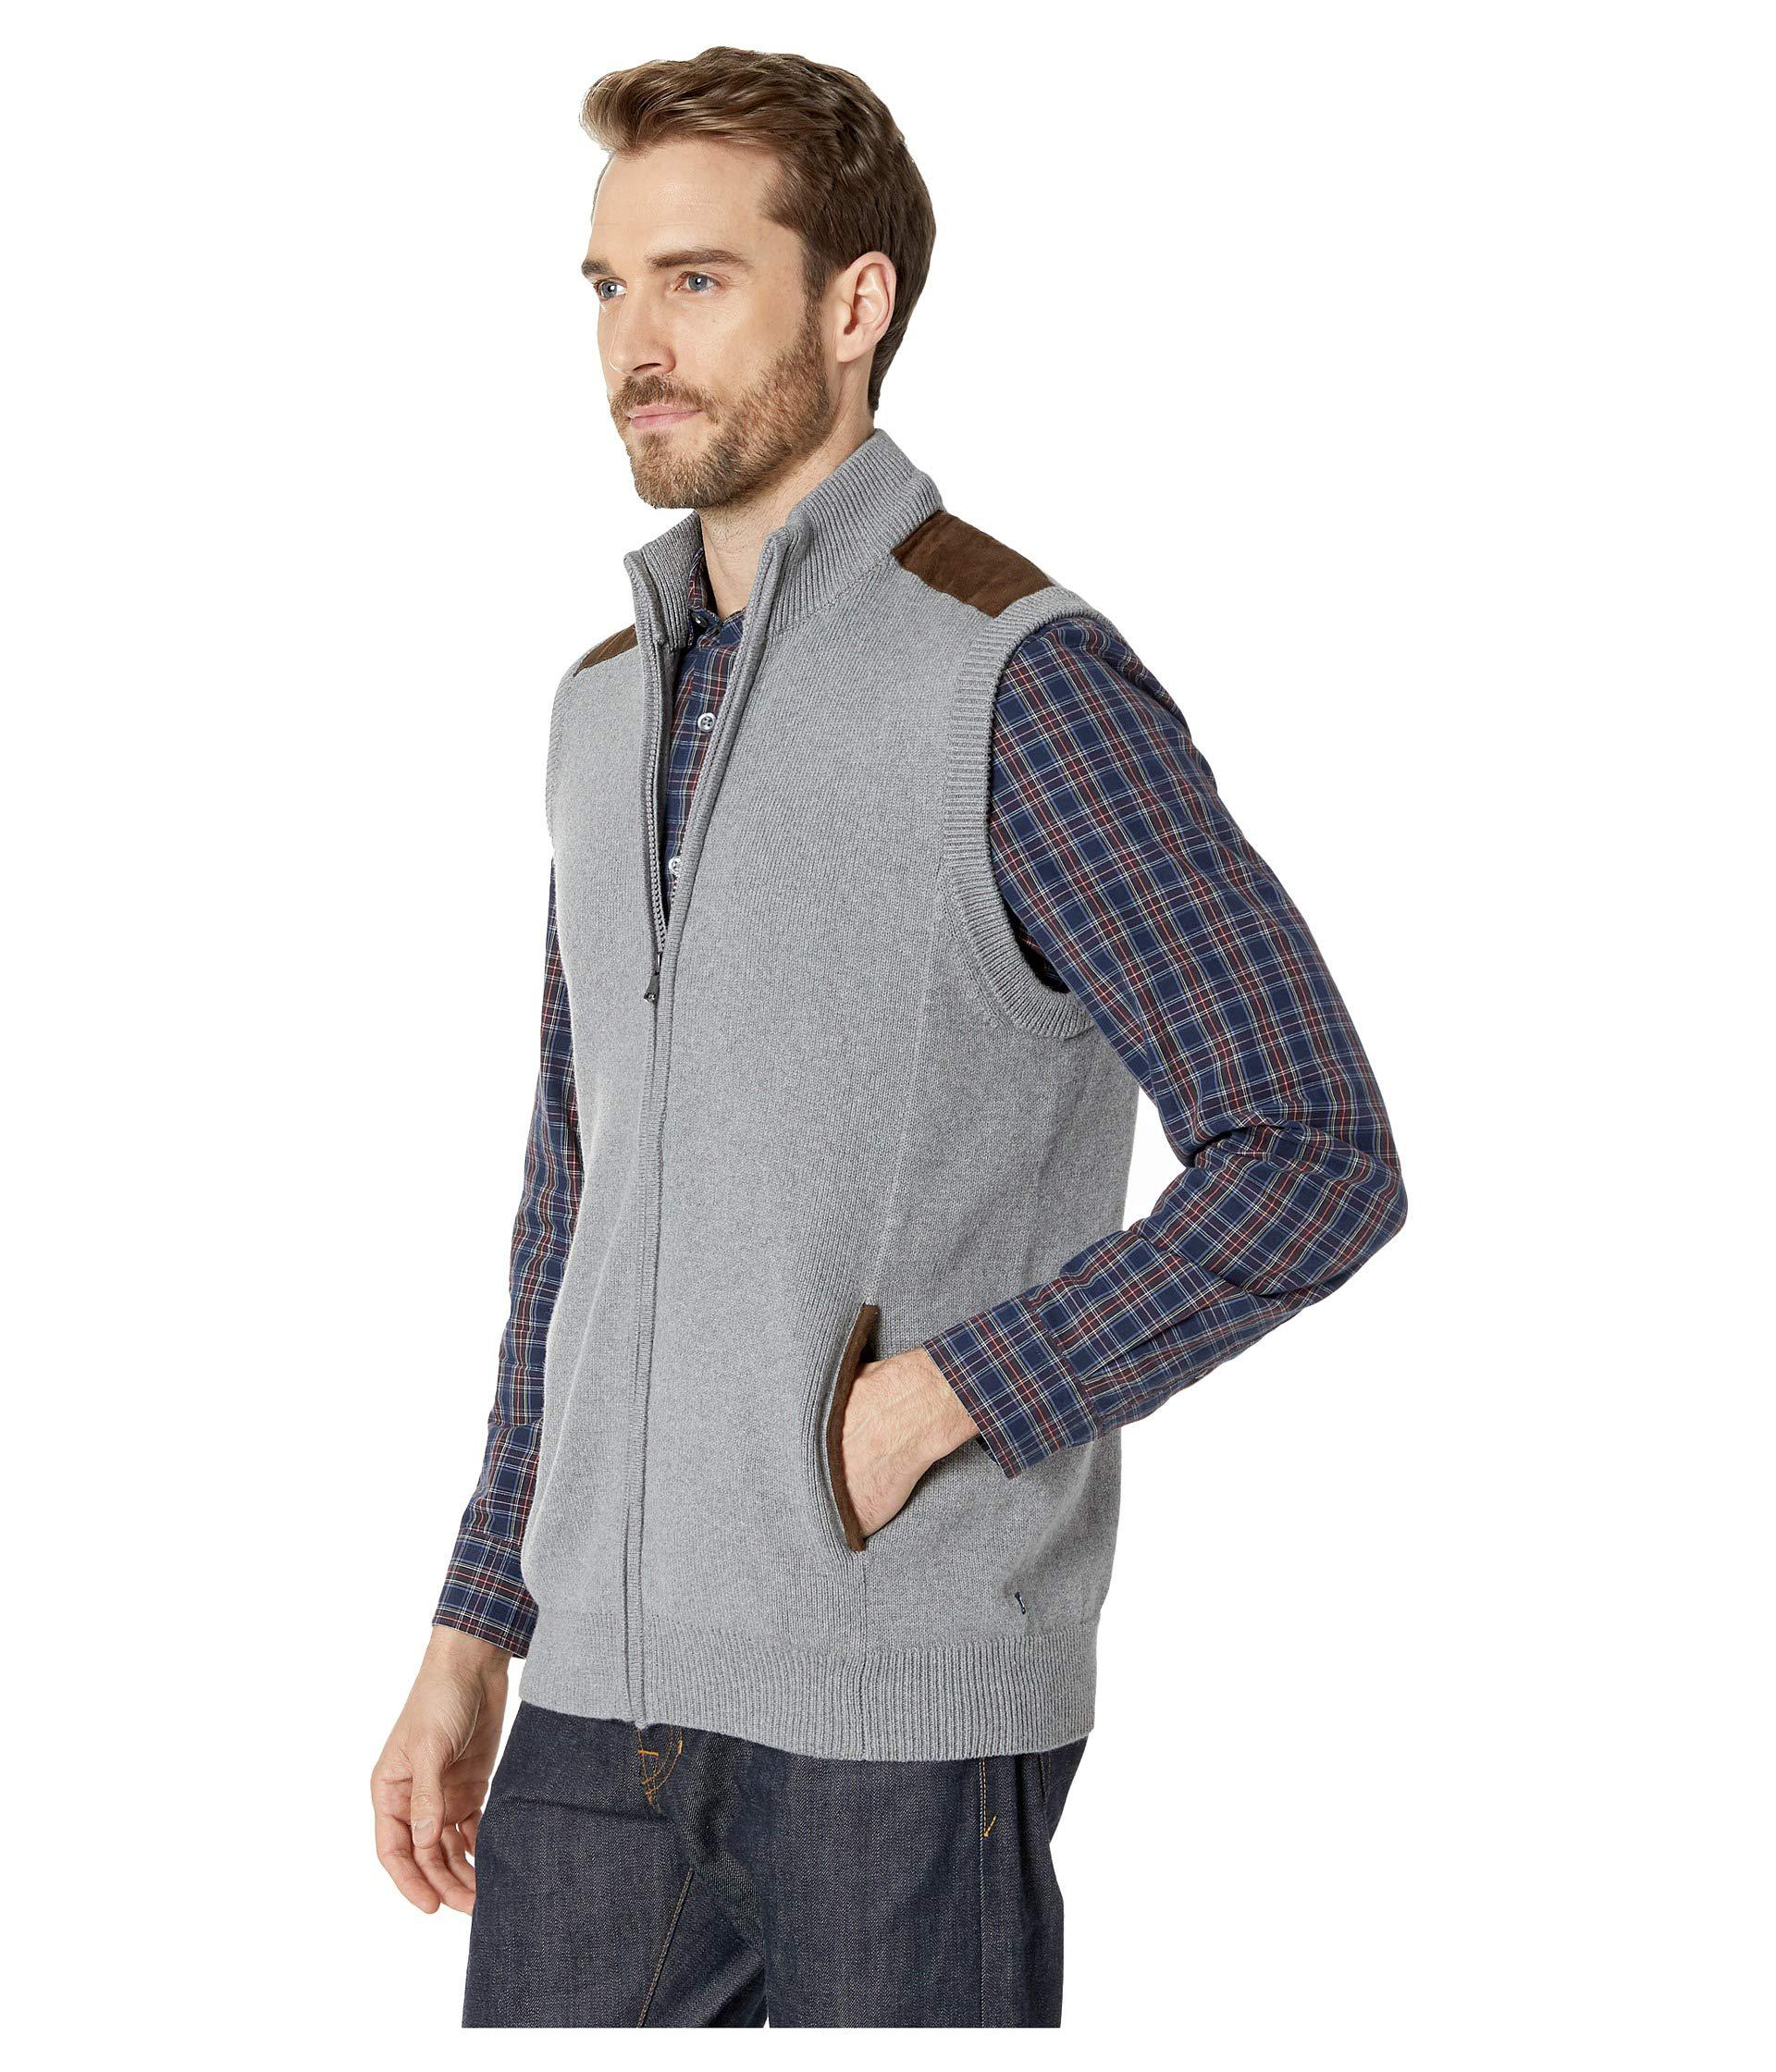 99bd3b874e Lyst - Chaps Cotton-zip Sweater Vest in Gray for Men - Save 46%